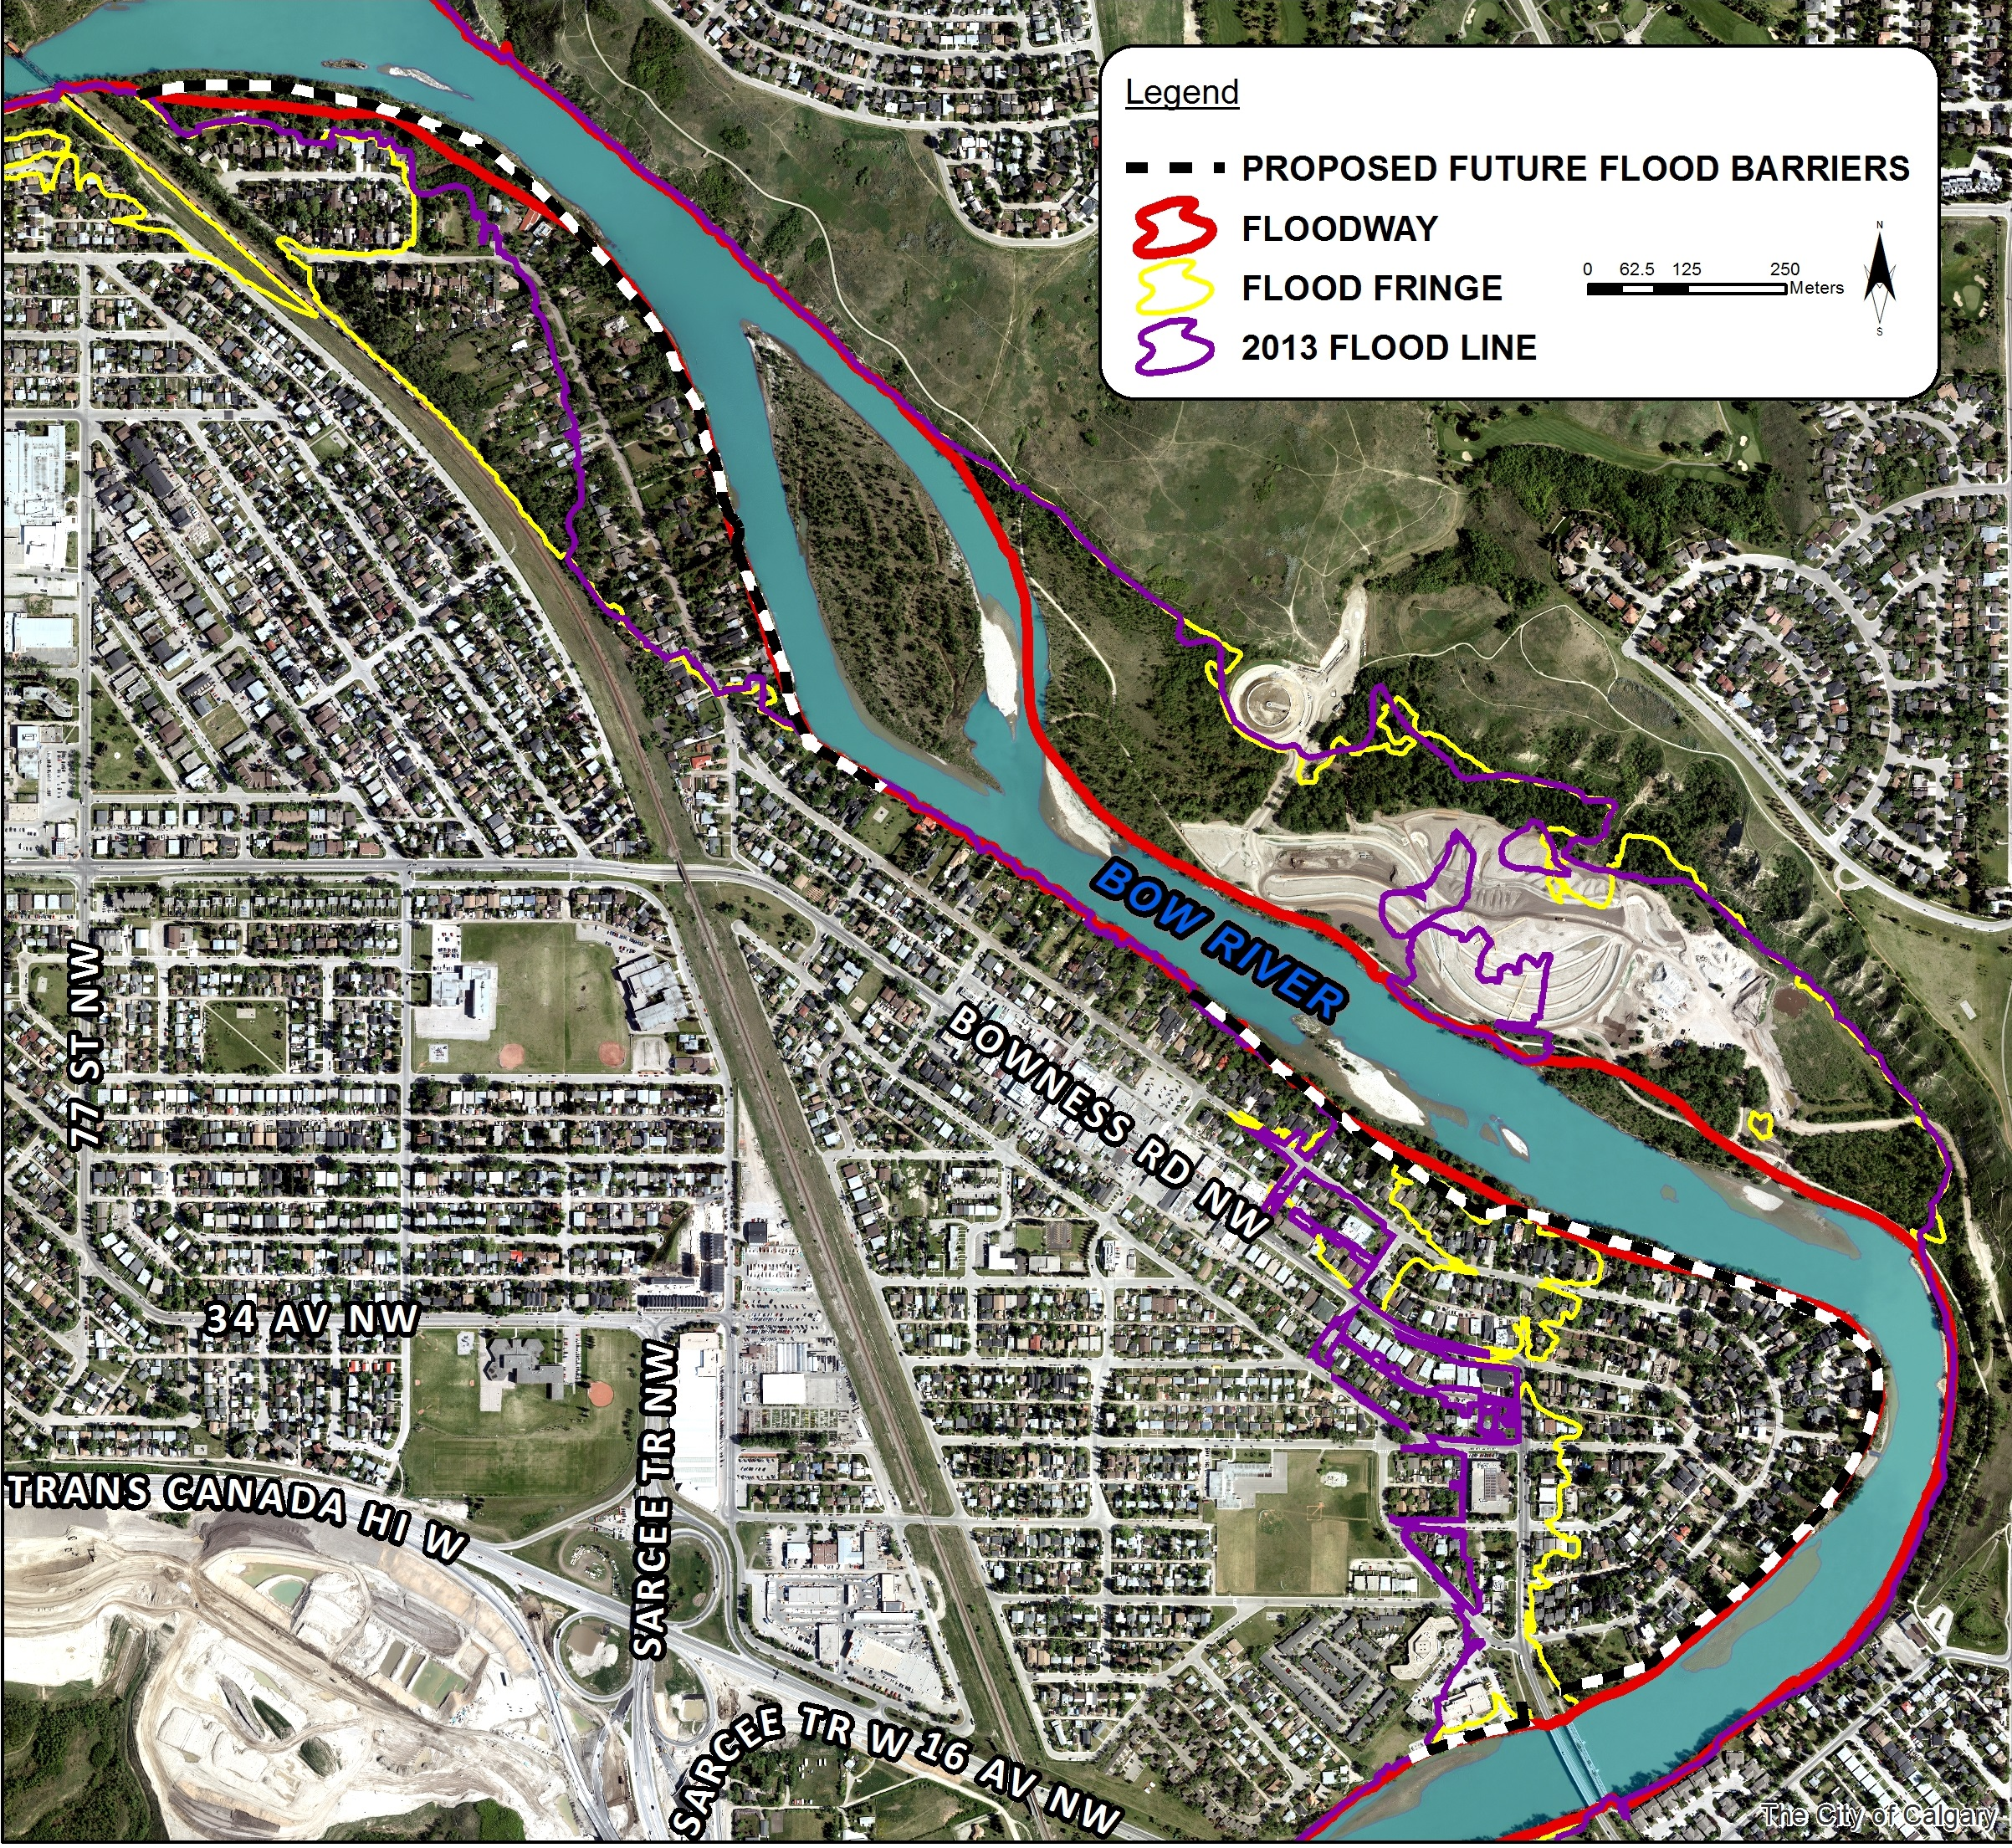 Map of Bowness showing the 2013 flood line, the floodway flood fringe area, and the location of proposed future flood barriers.